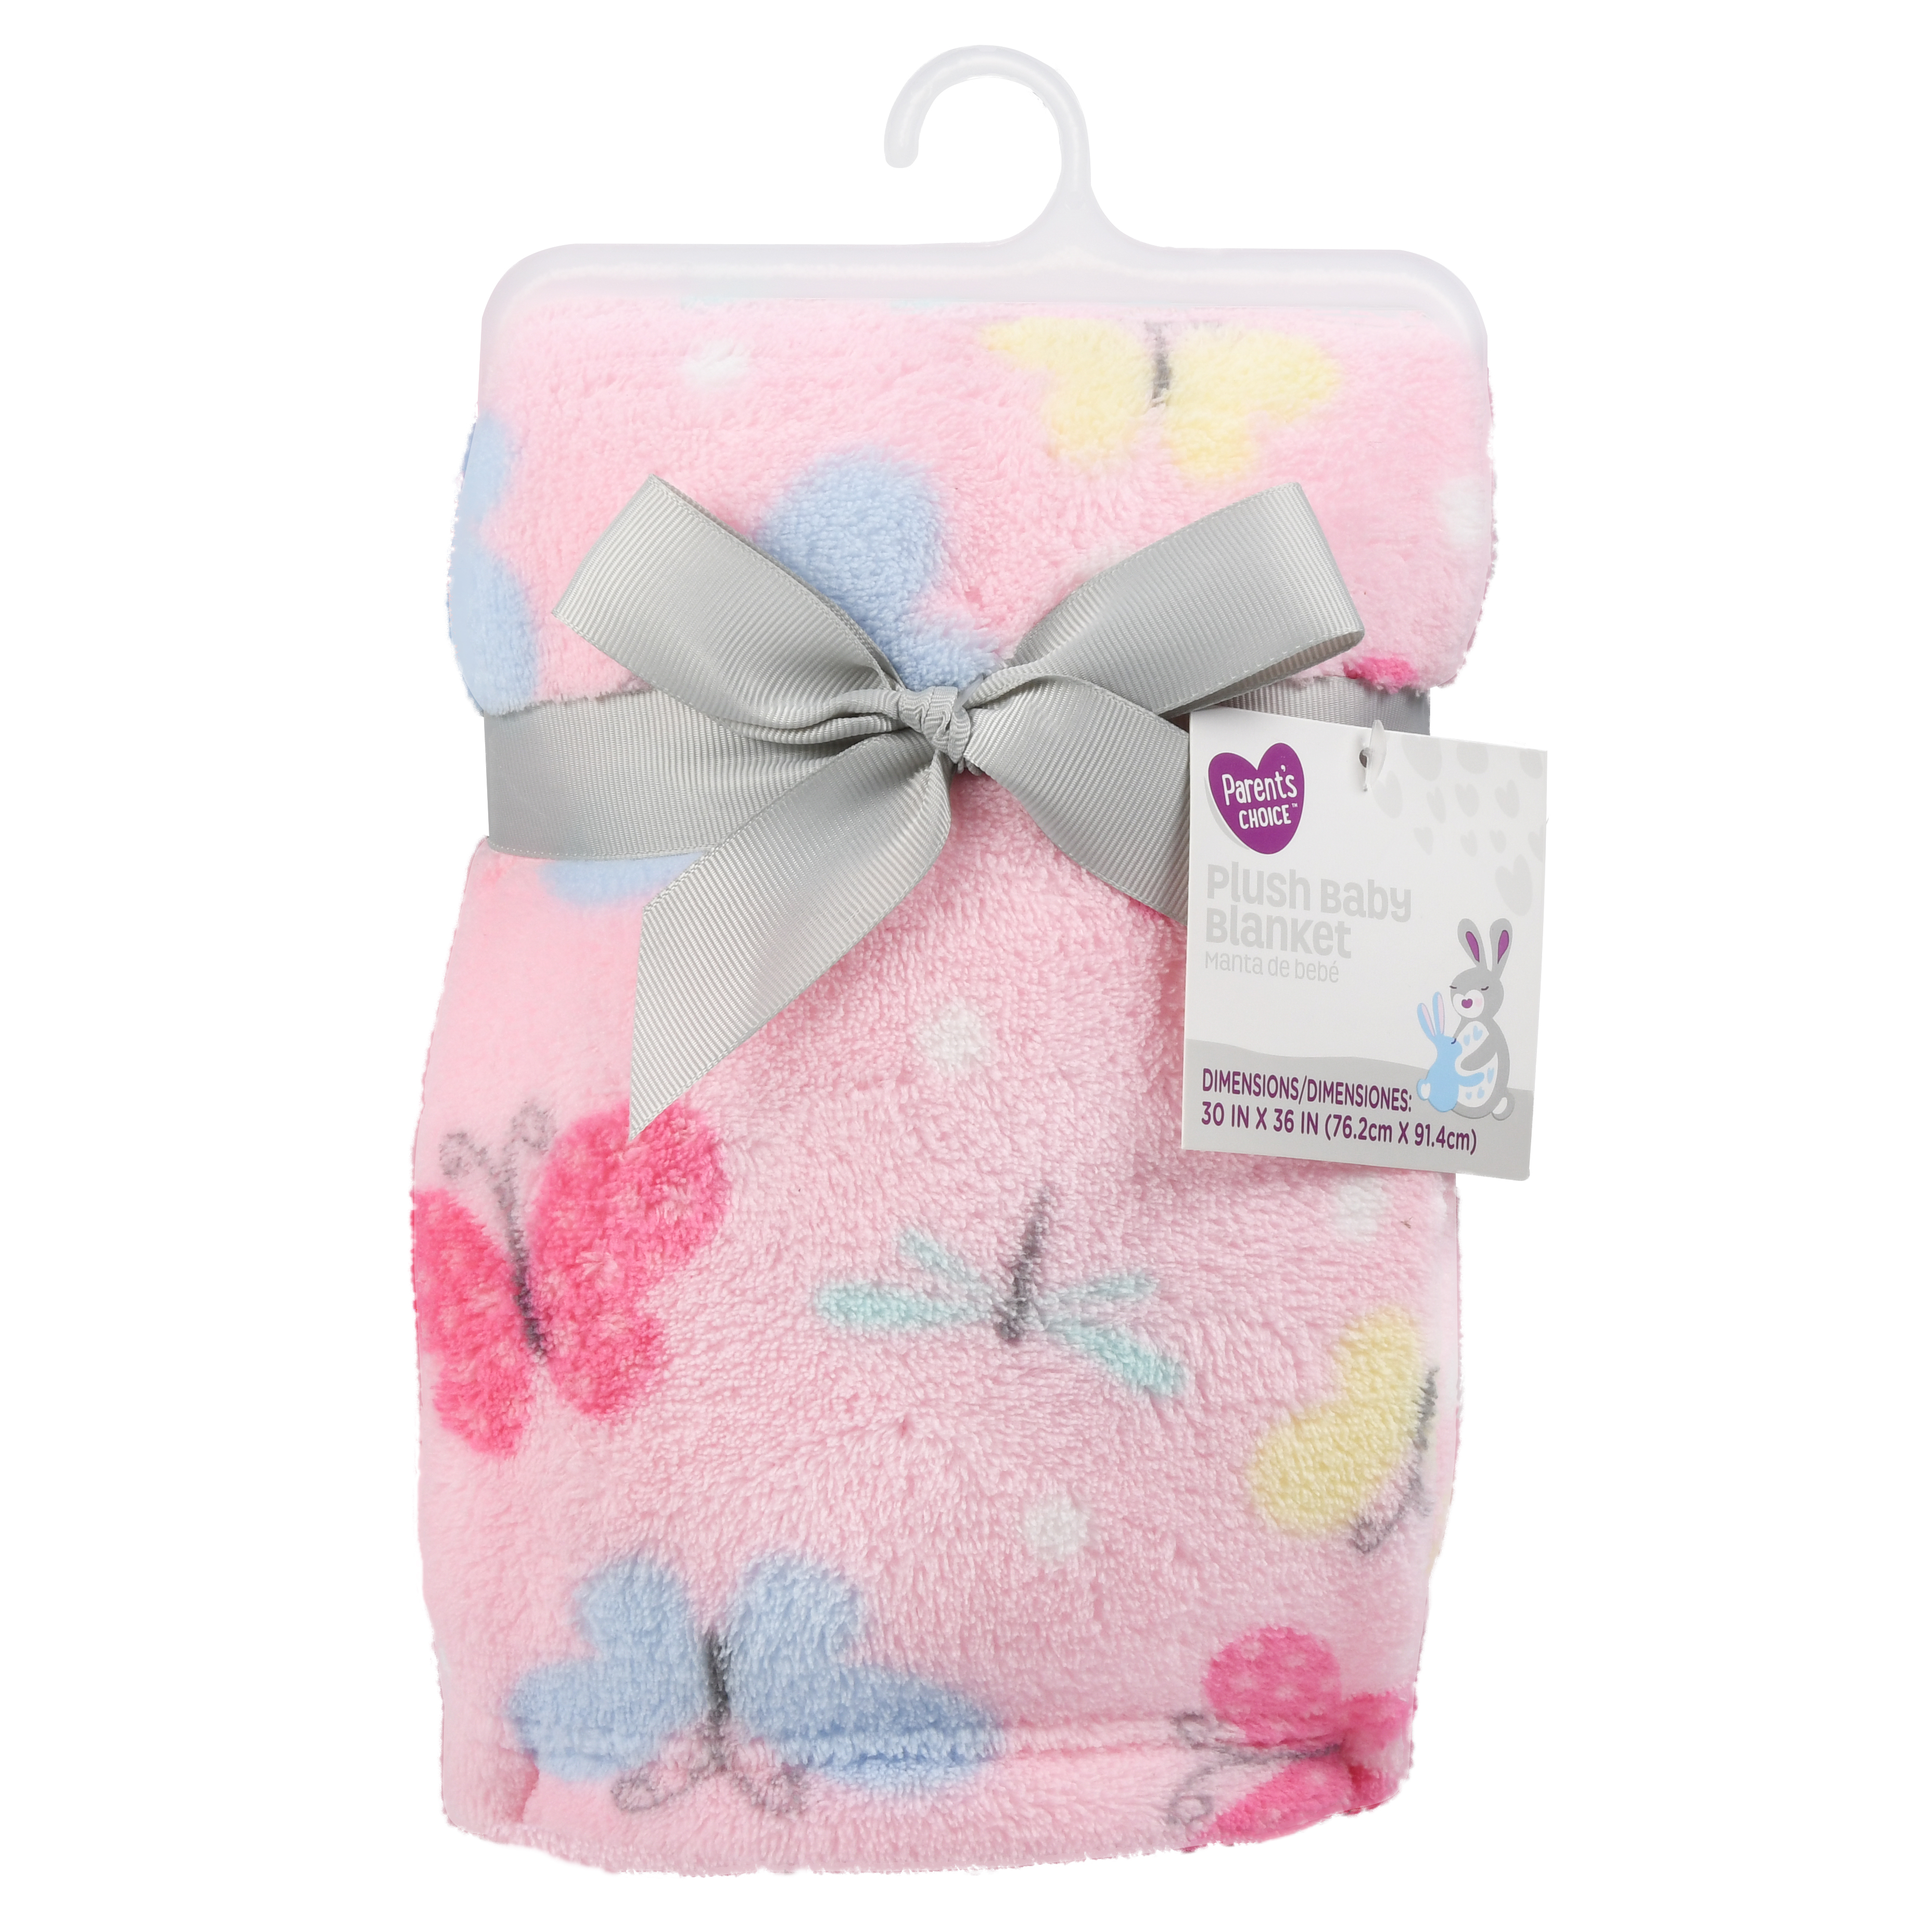 Parent's Choice Plush Baby Blanket, Pink Butterfly, 1 Pack